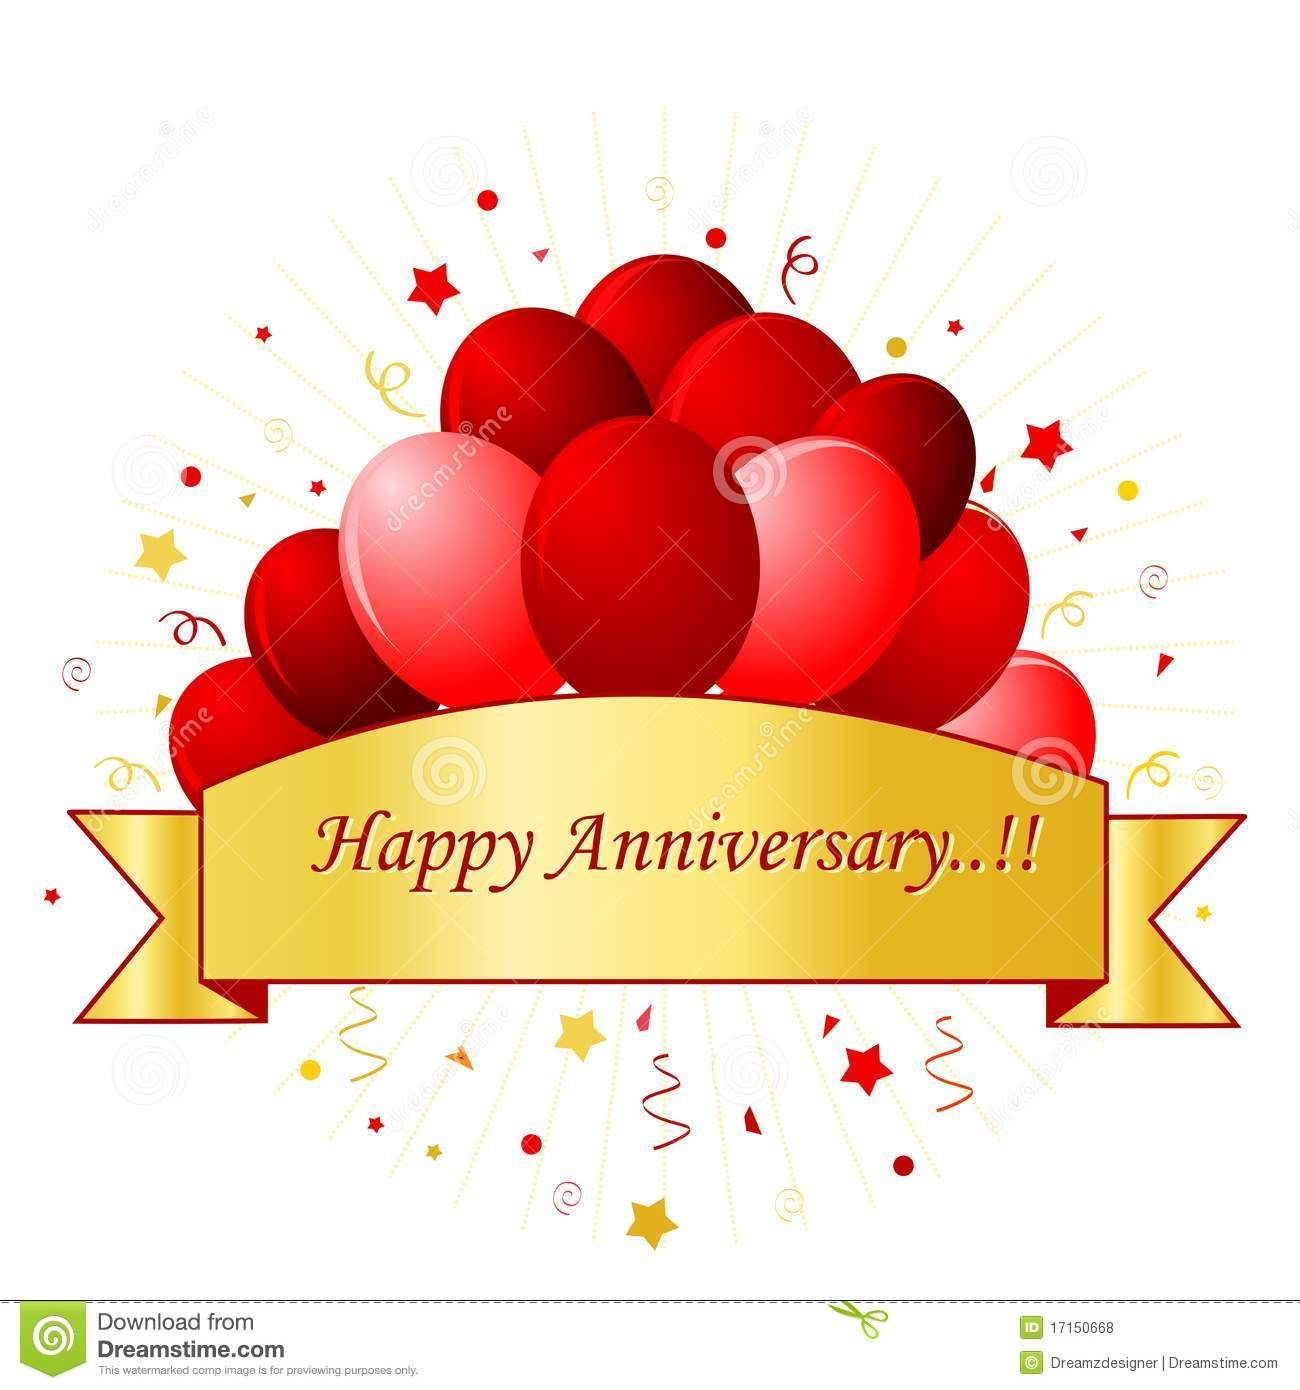 Happy Anniversary card in red letters with beautiful red.